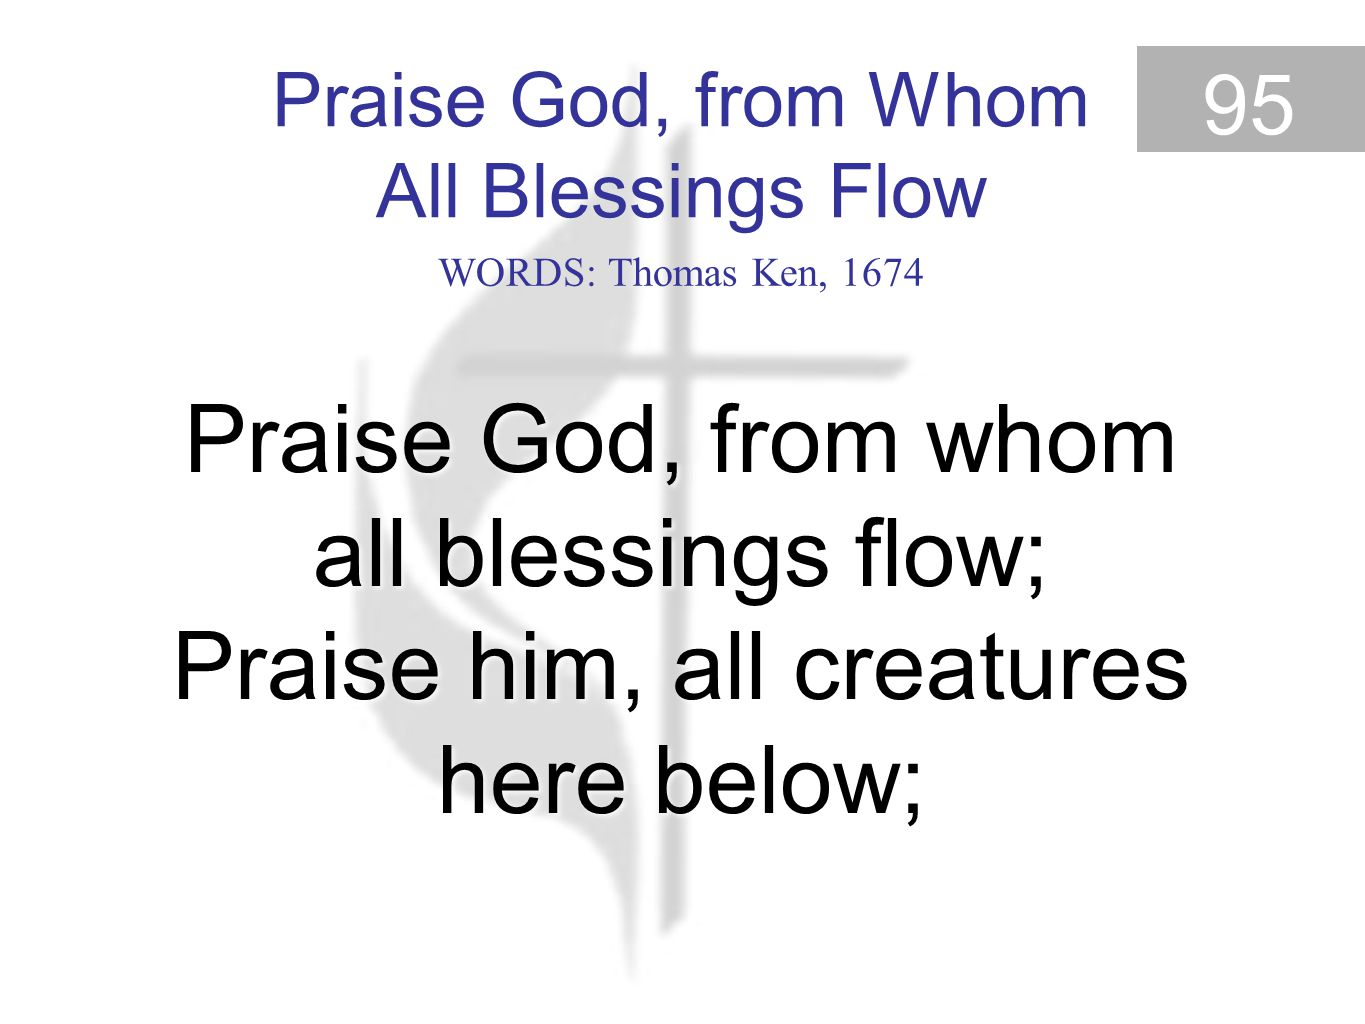 Praise God, from Whom All Blessings Flow 95 Praise God, from whom all blessings flow; Praise him, all creatures here below; Praise God, from Whom All Blessings Flow (Old 100th) WORDS: Thomas Ken, 1674